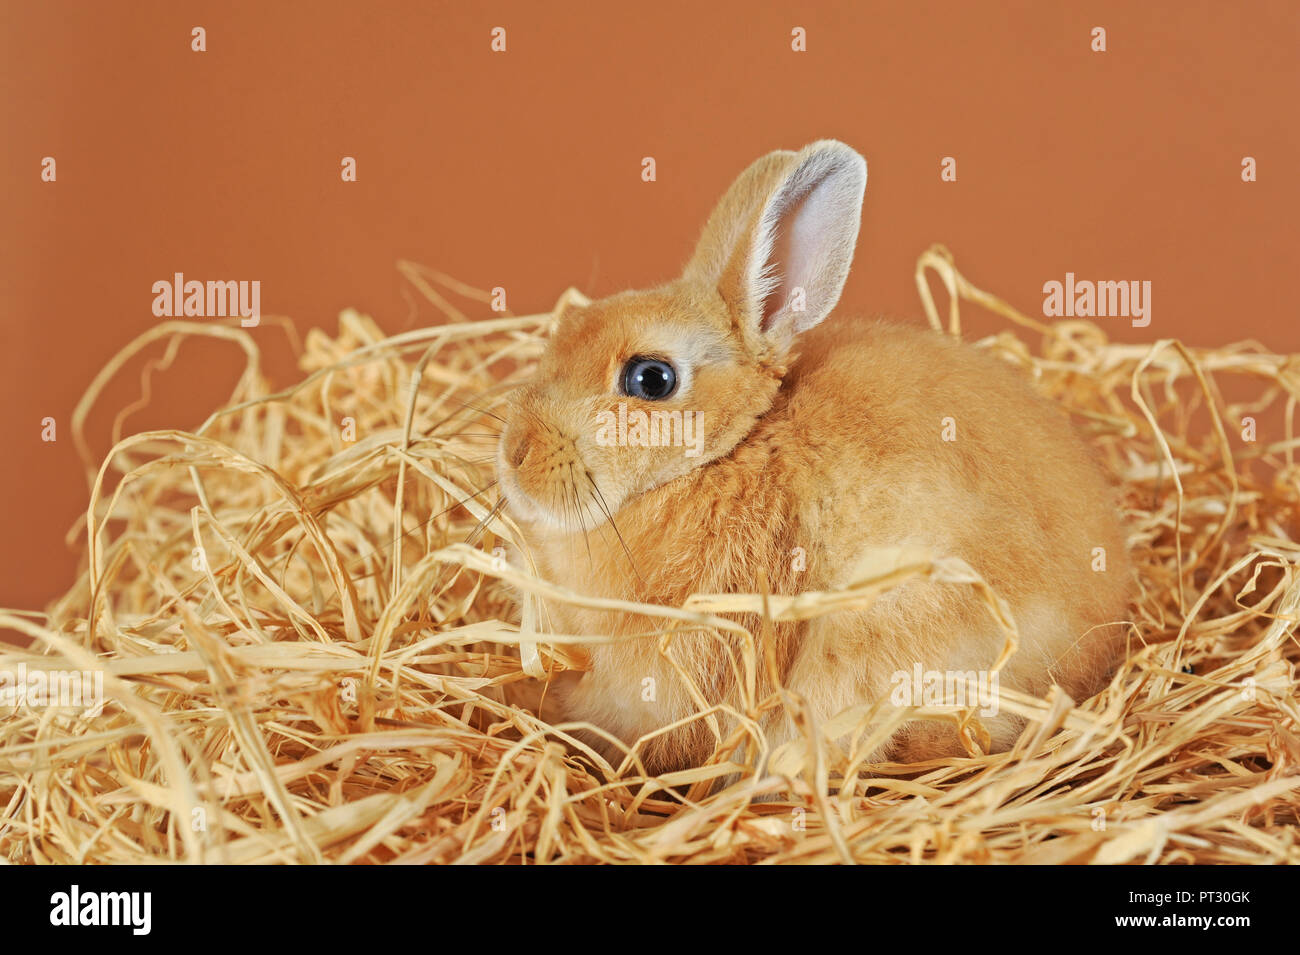 Dwarf rabbit, brown, young animal in straw, Austria - Stock Image